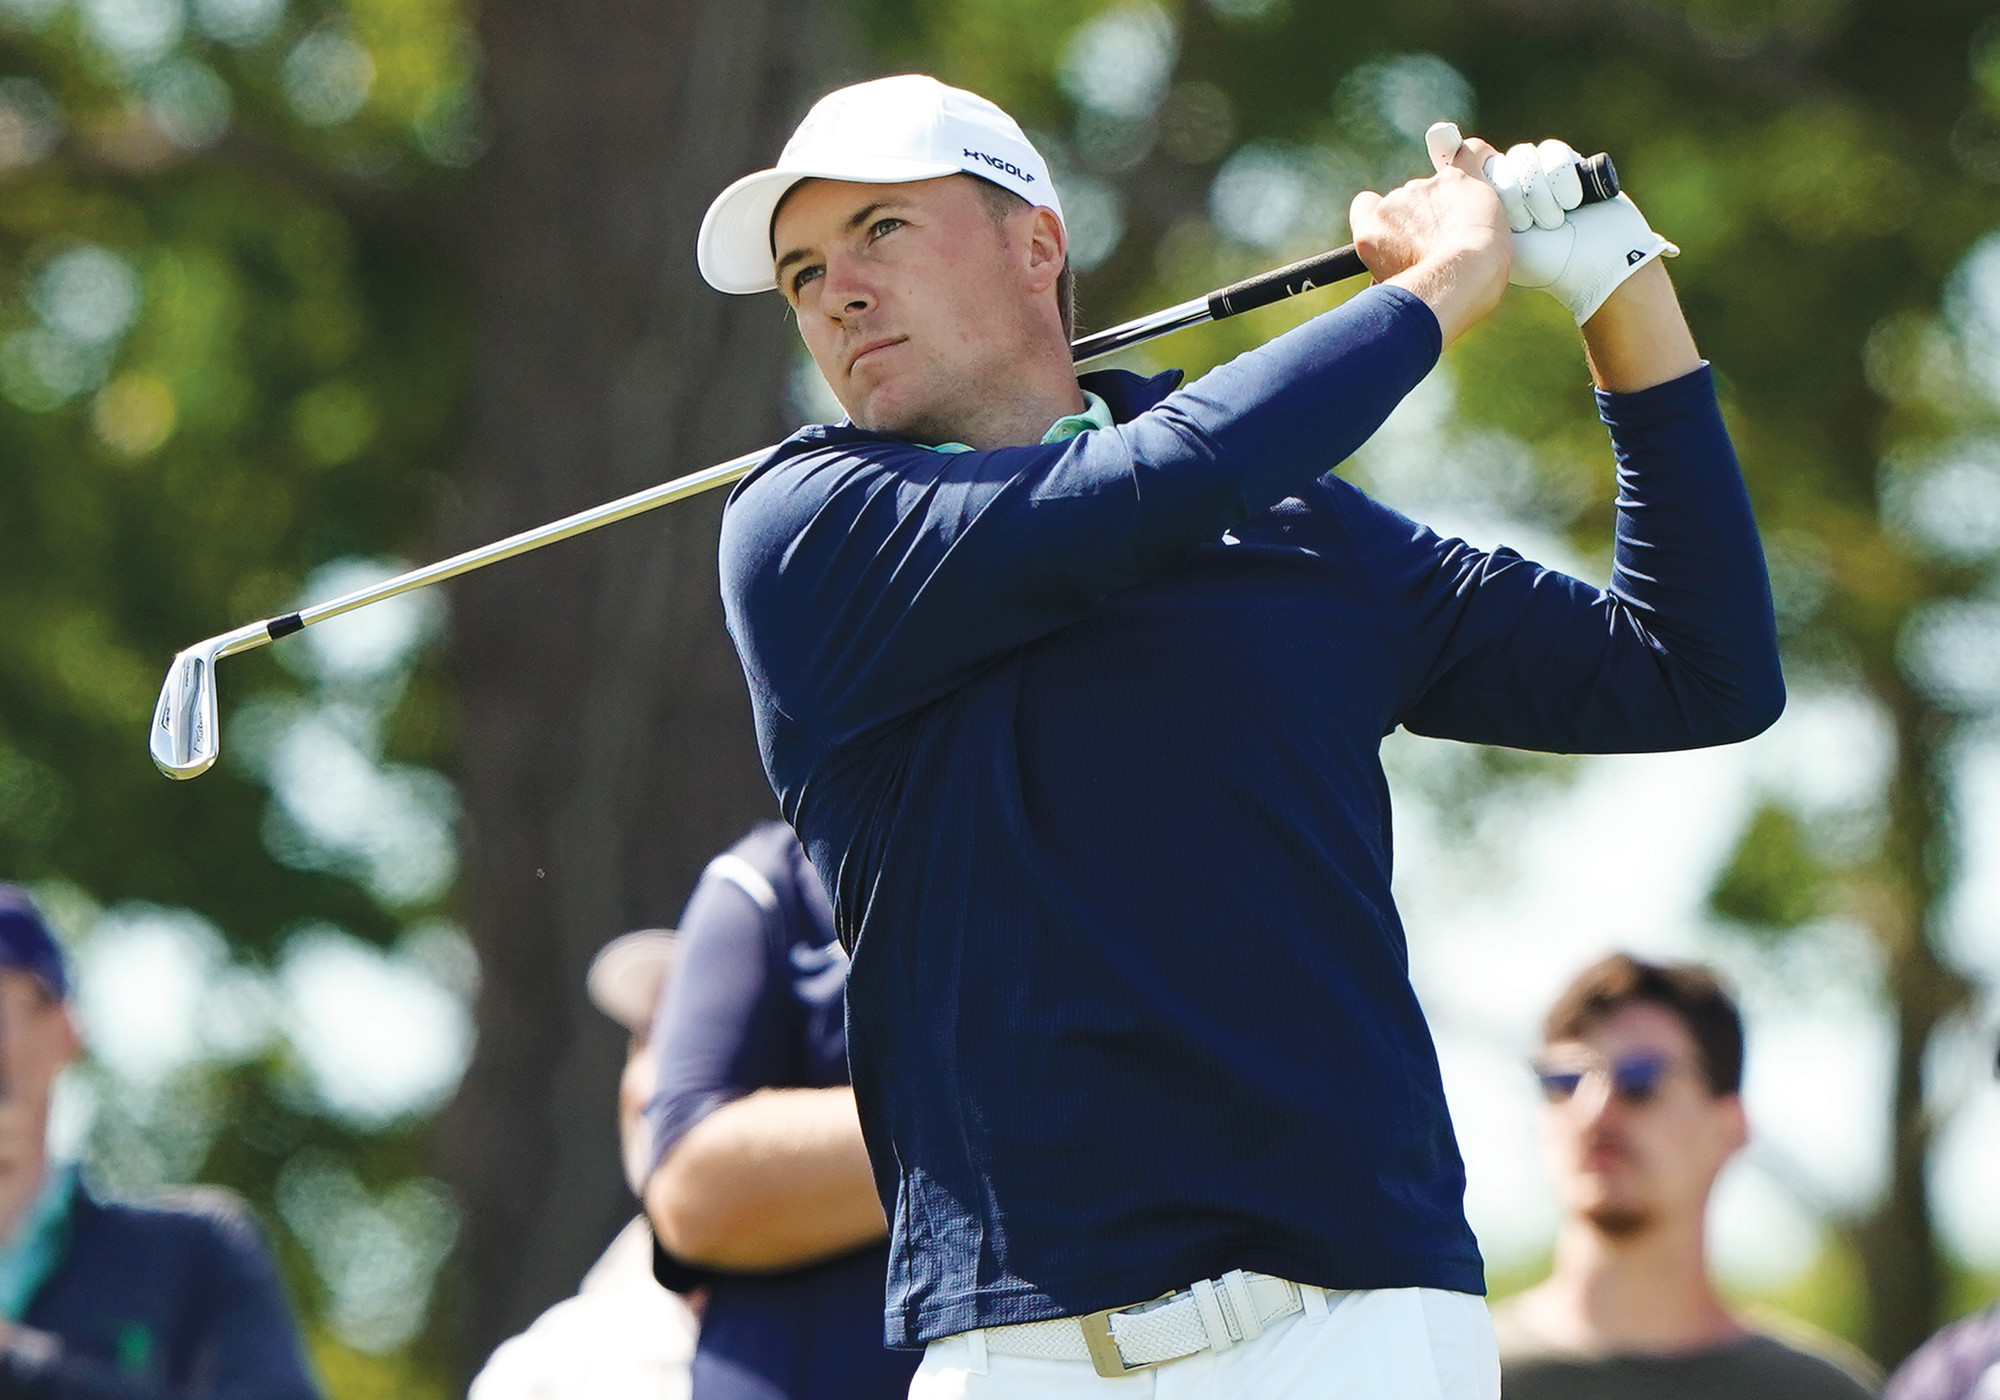 Jordan Spieth hits off the seventh tee during a practice round for the U.S. Open Golf Championship on Tuesday in Southampton, N.Y.